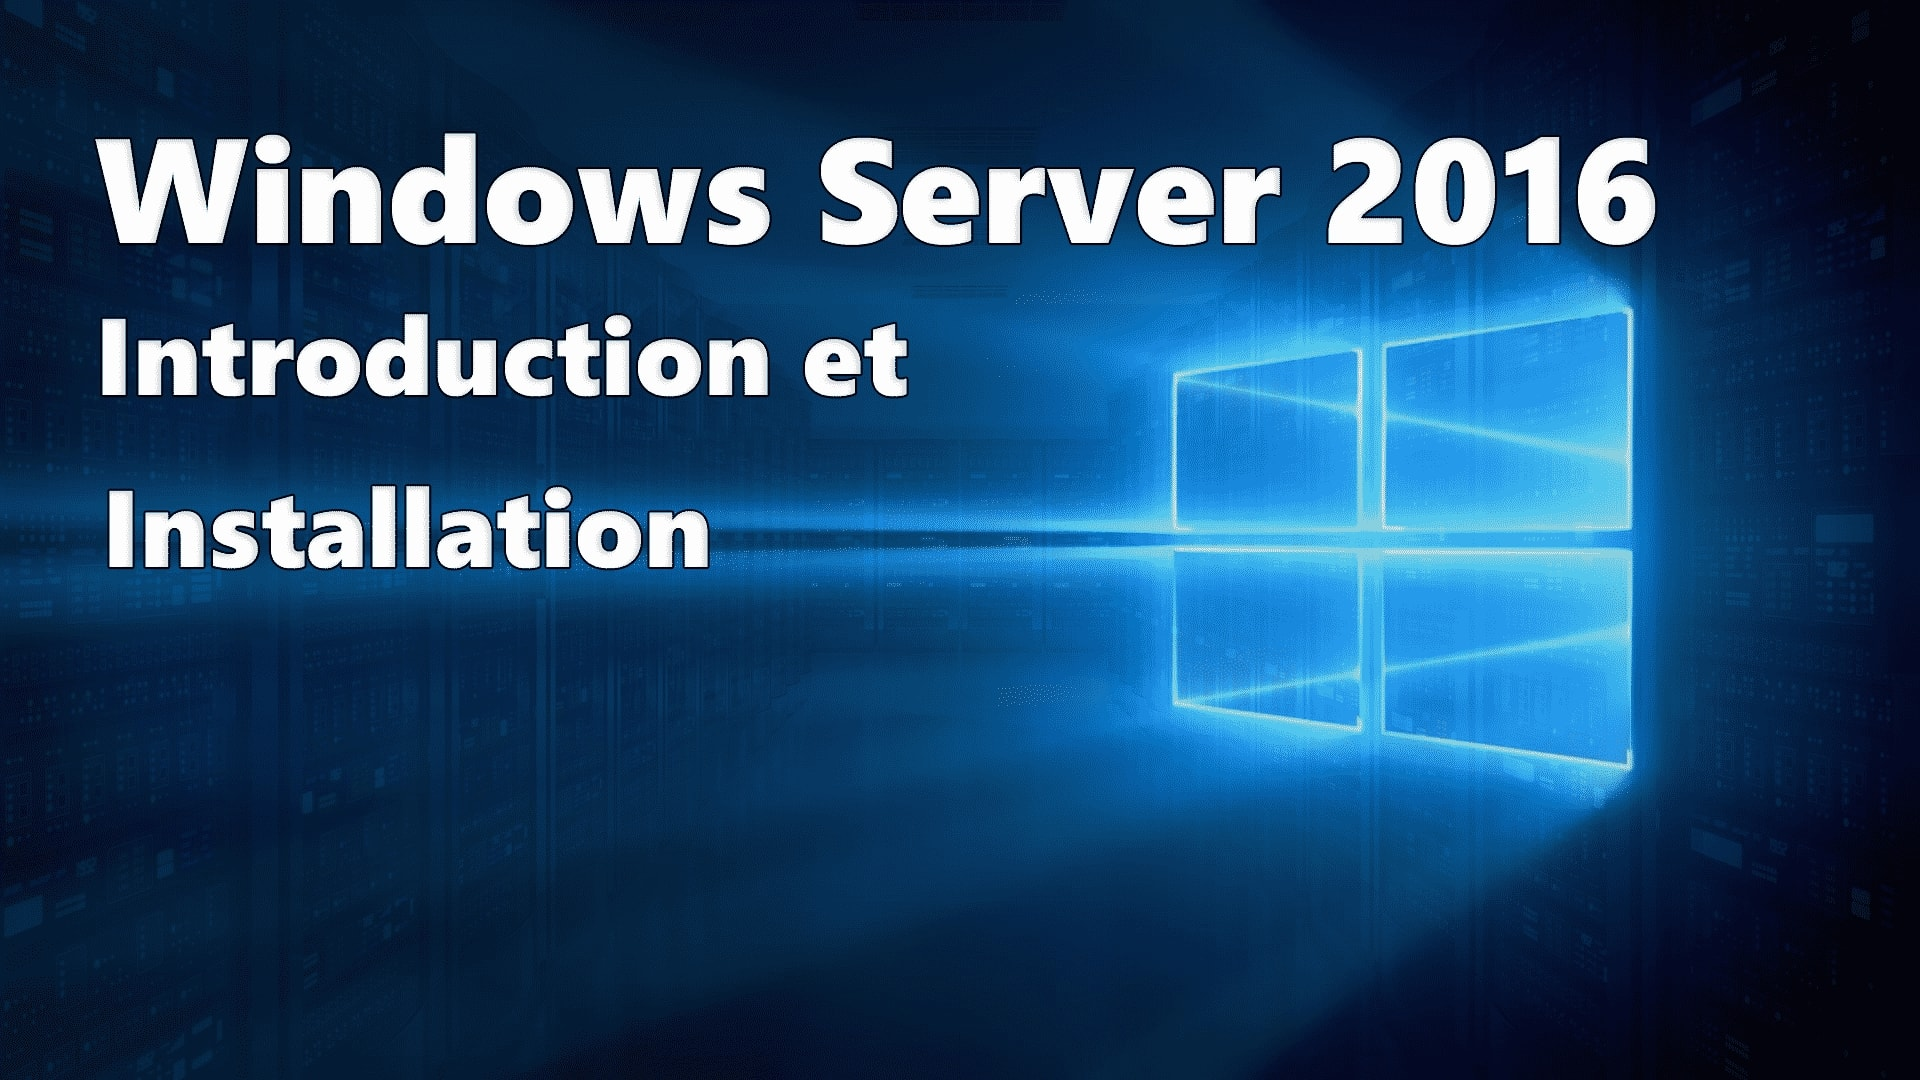 Windows Server 2016 : Procédure d'installation